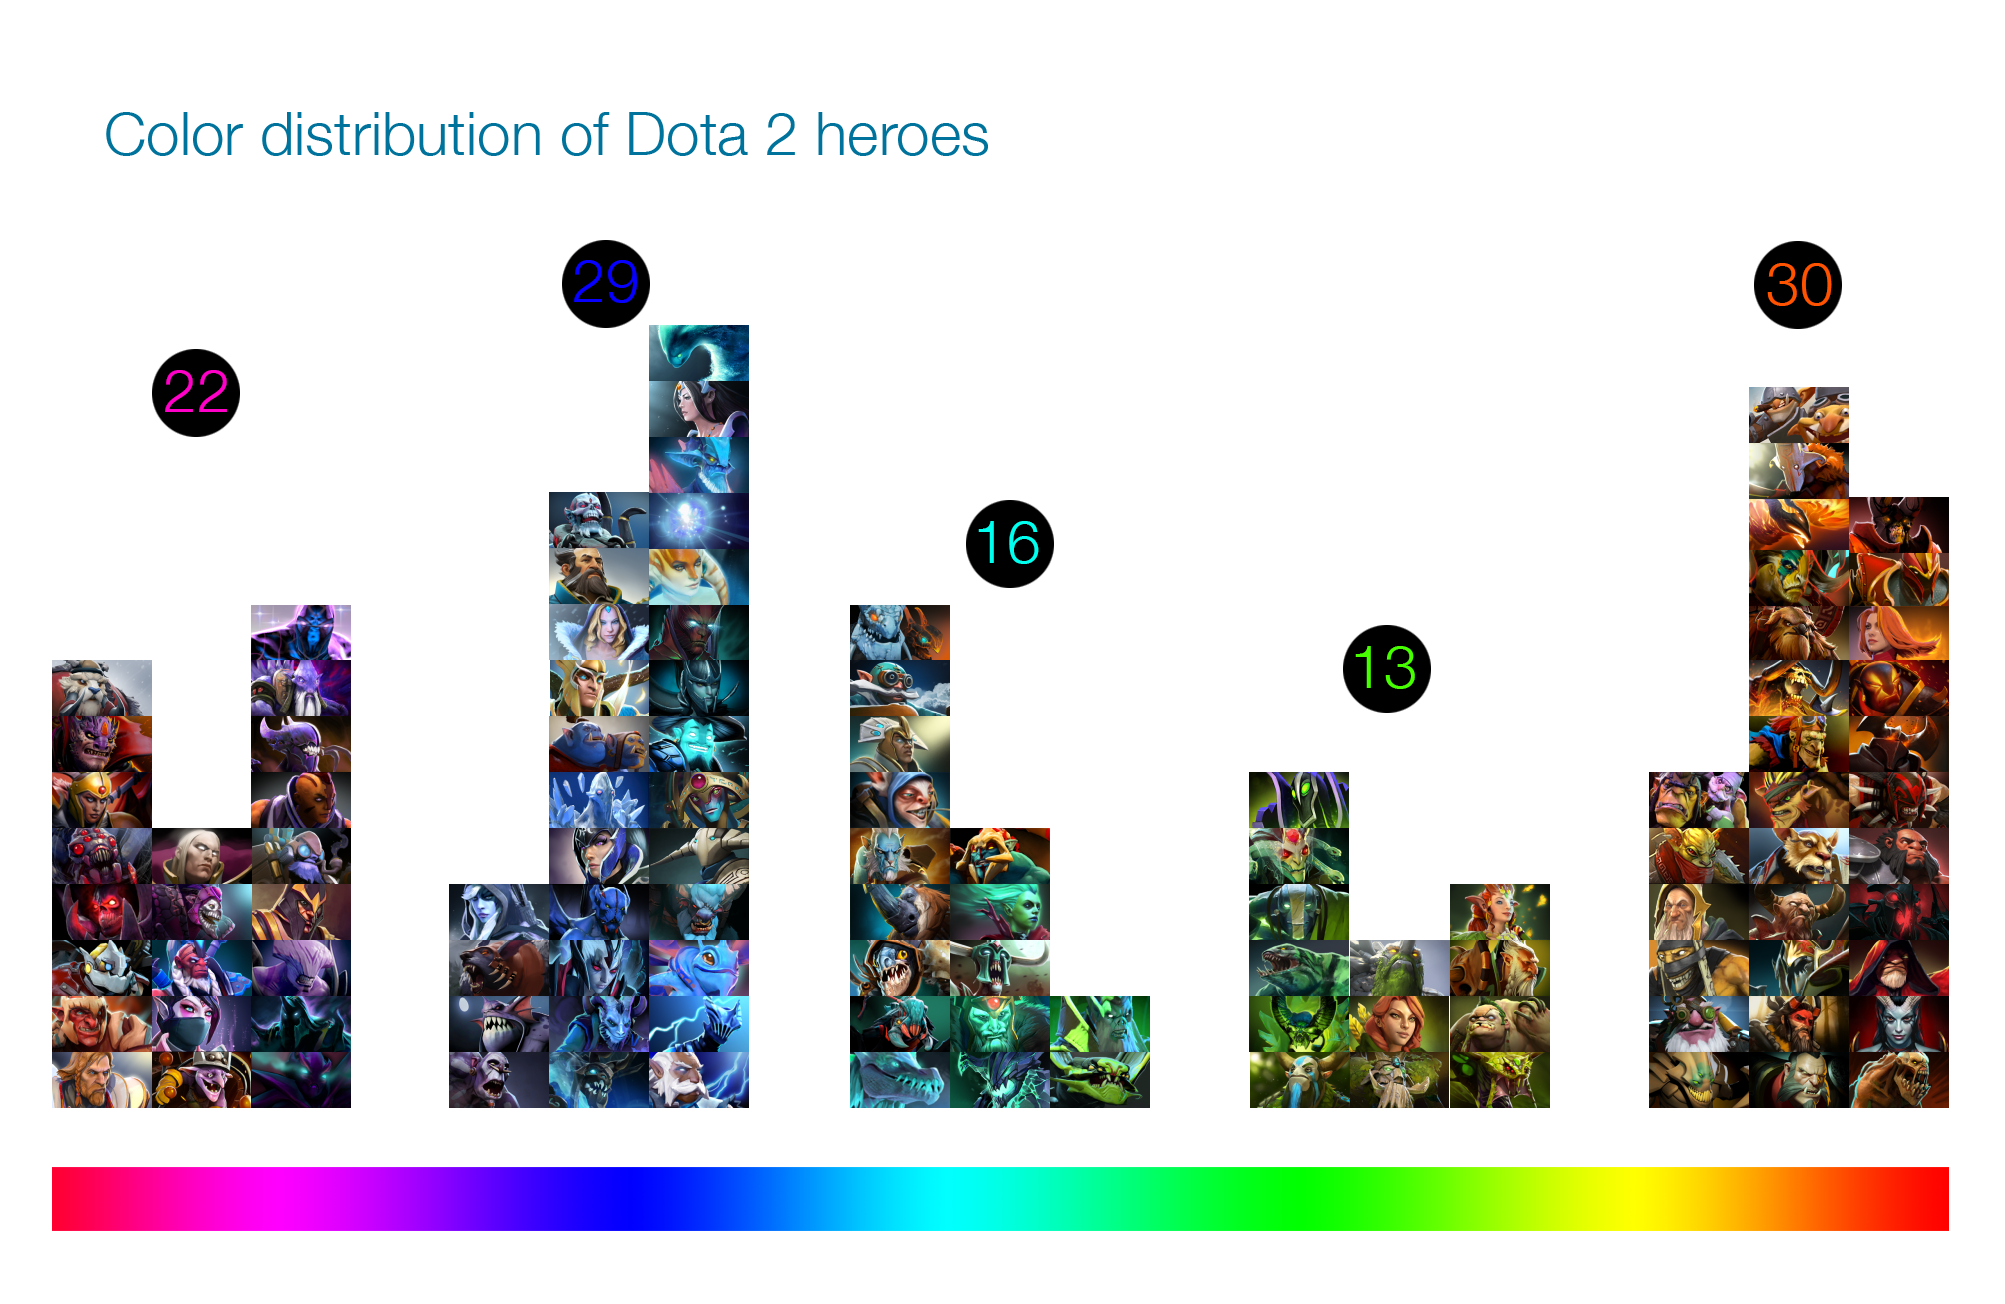 dota 2 heroes gradient - Pictures To Color In 2